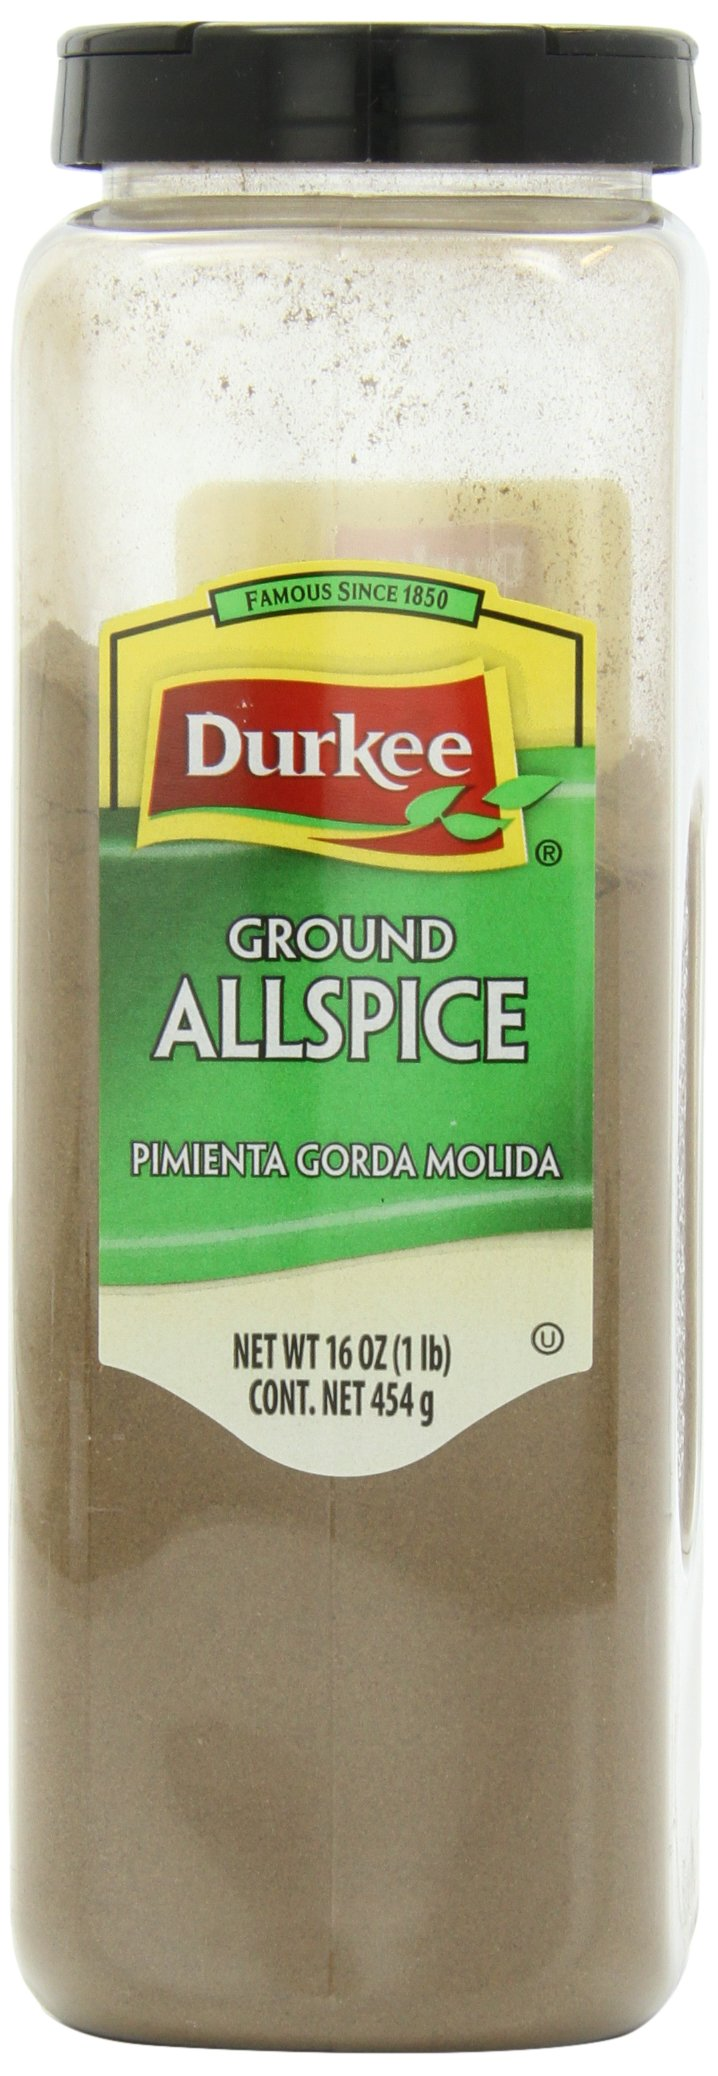 Durkee Ground Allspice, 16-Ounce